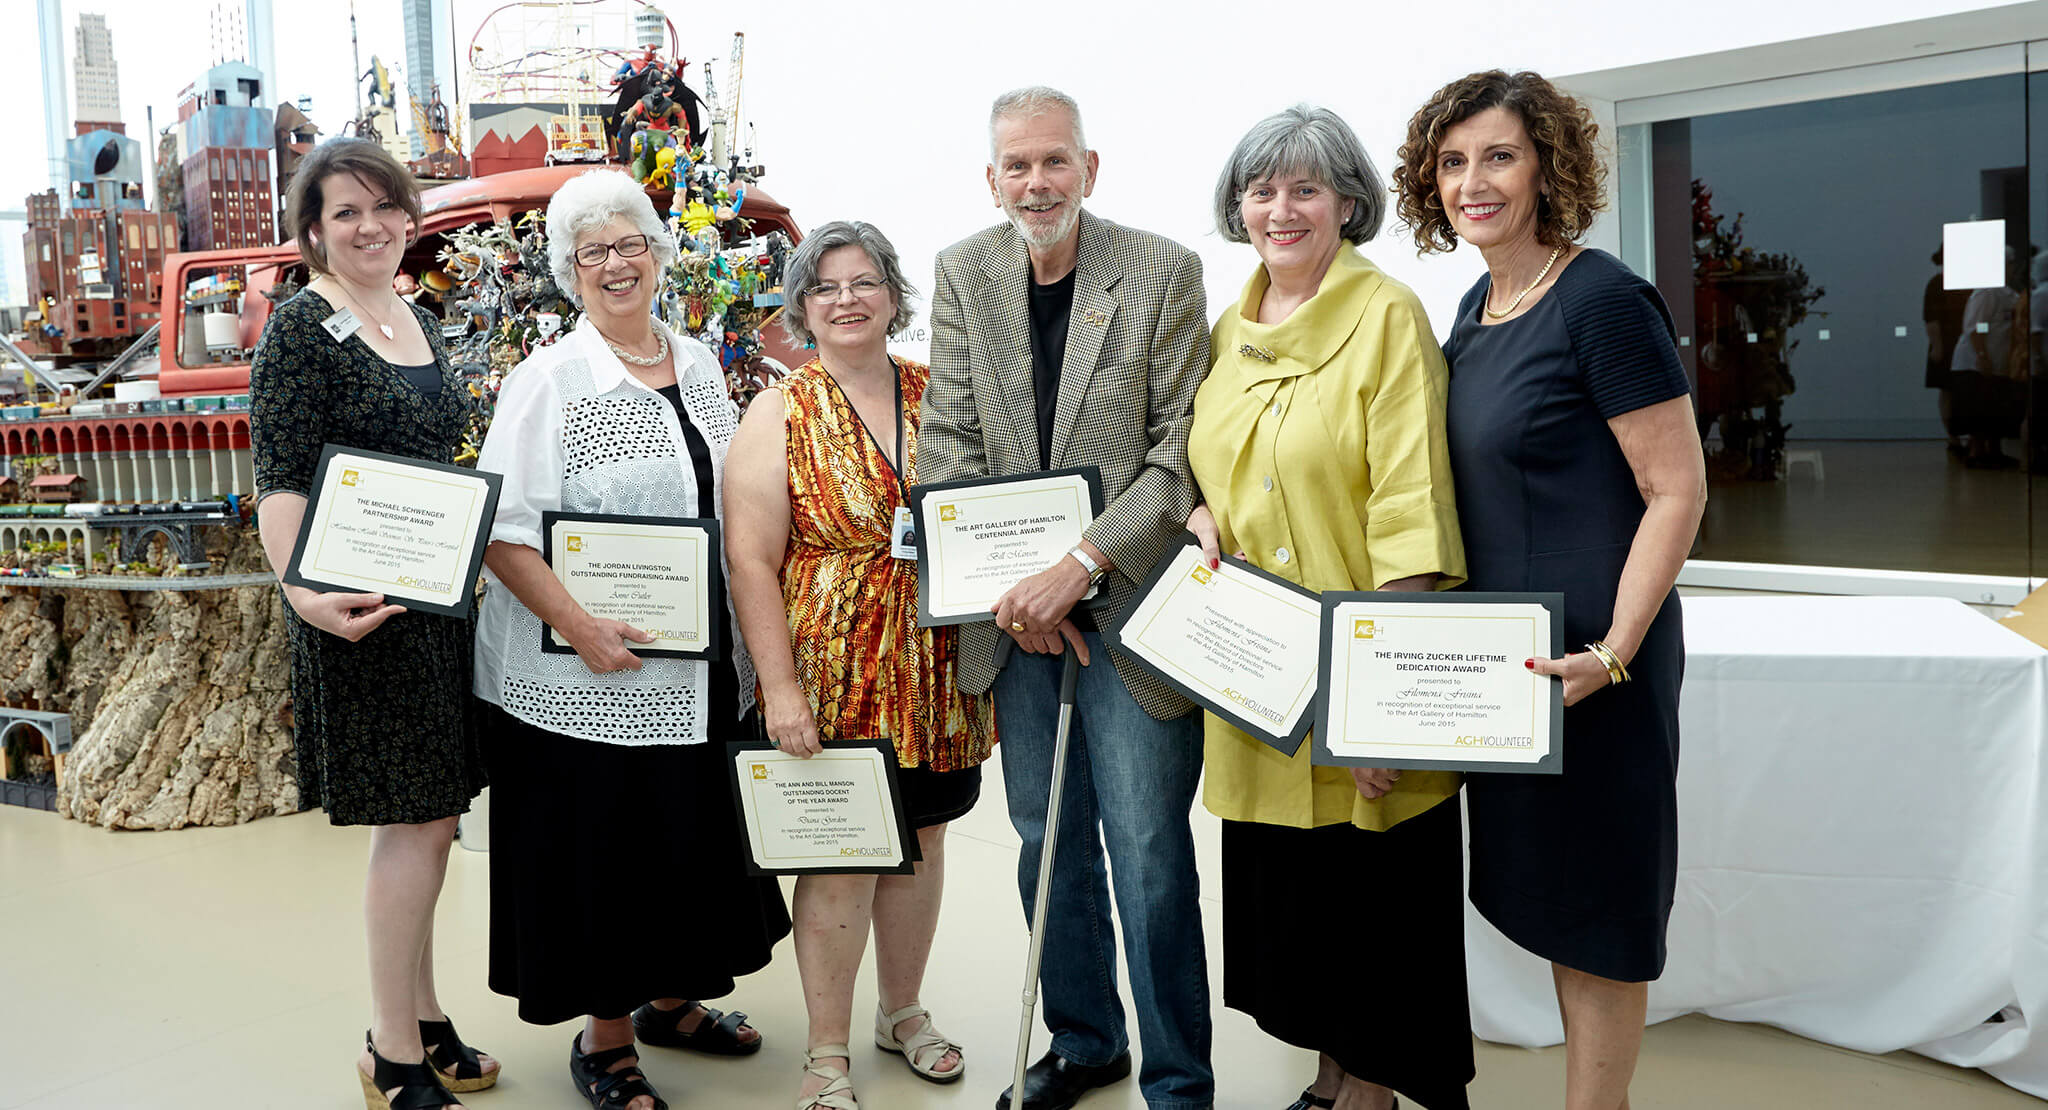 Volunteer Appreciation Runs Deep at the AGH